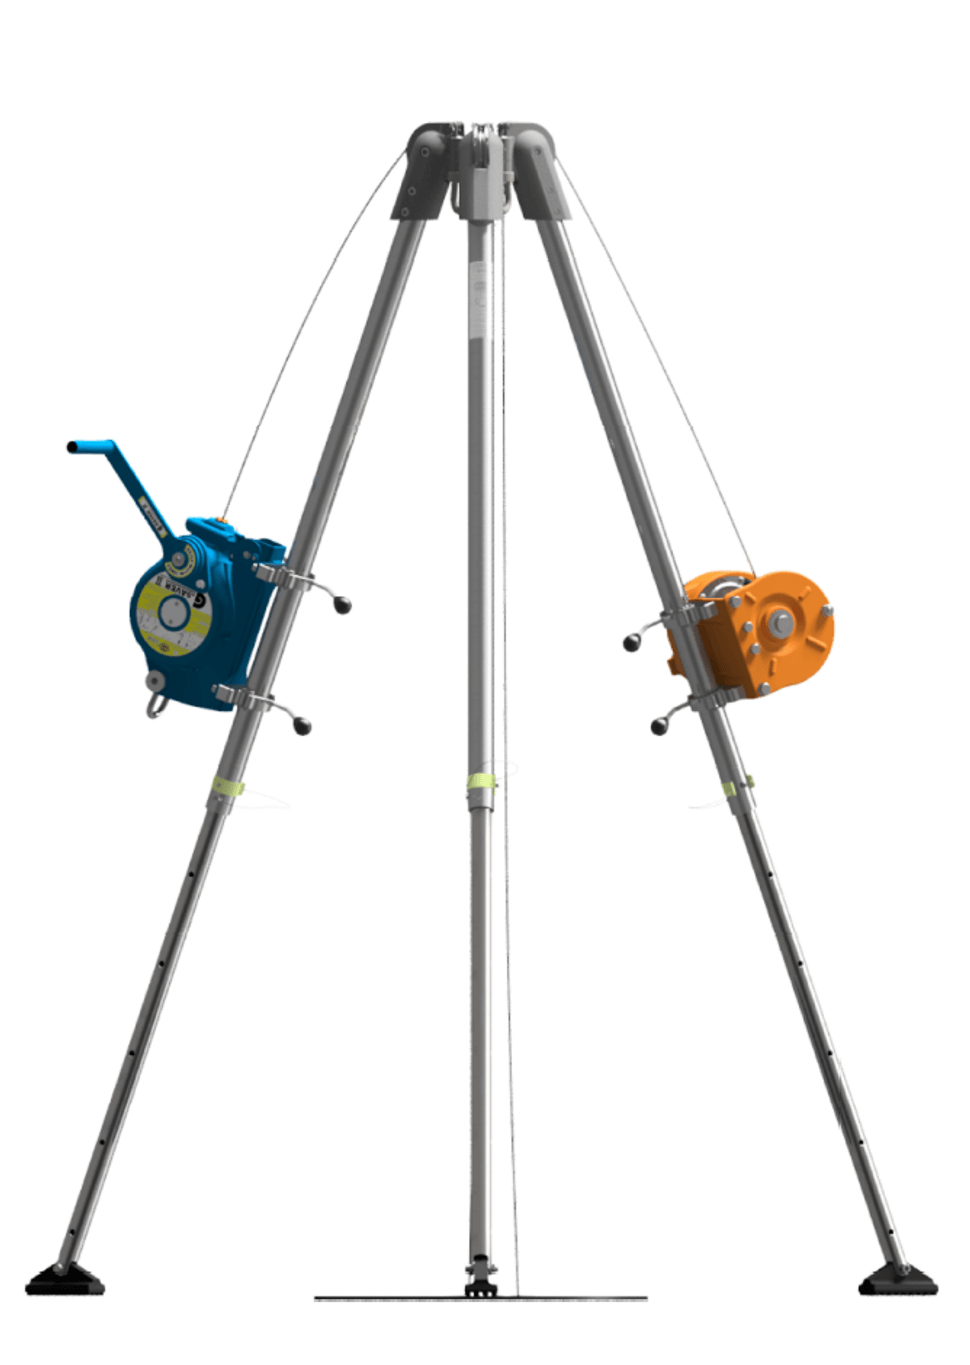 Compact G. Tripod 230 with pulleys, emergency rescue and confined spaces tripod